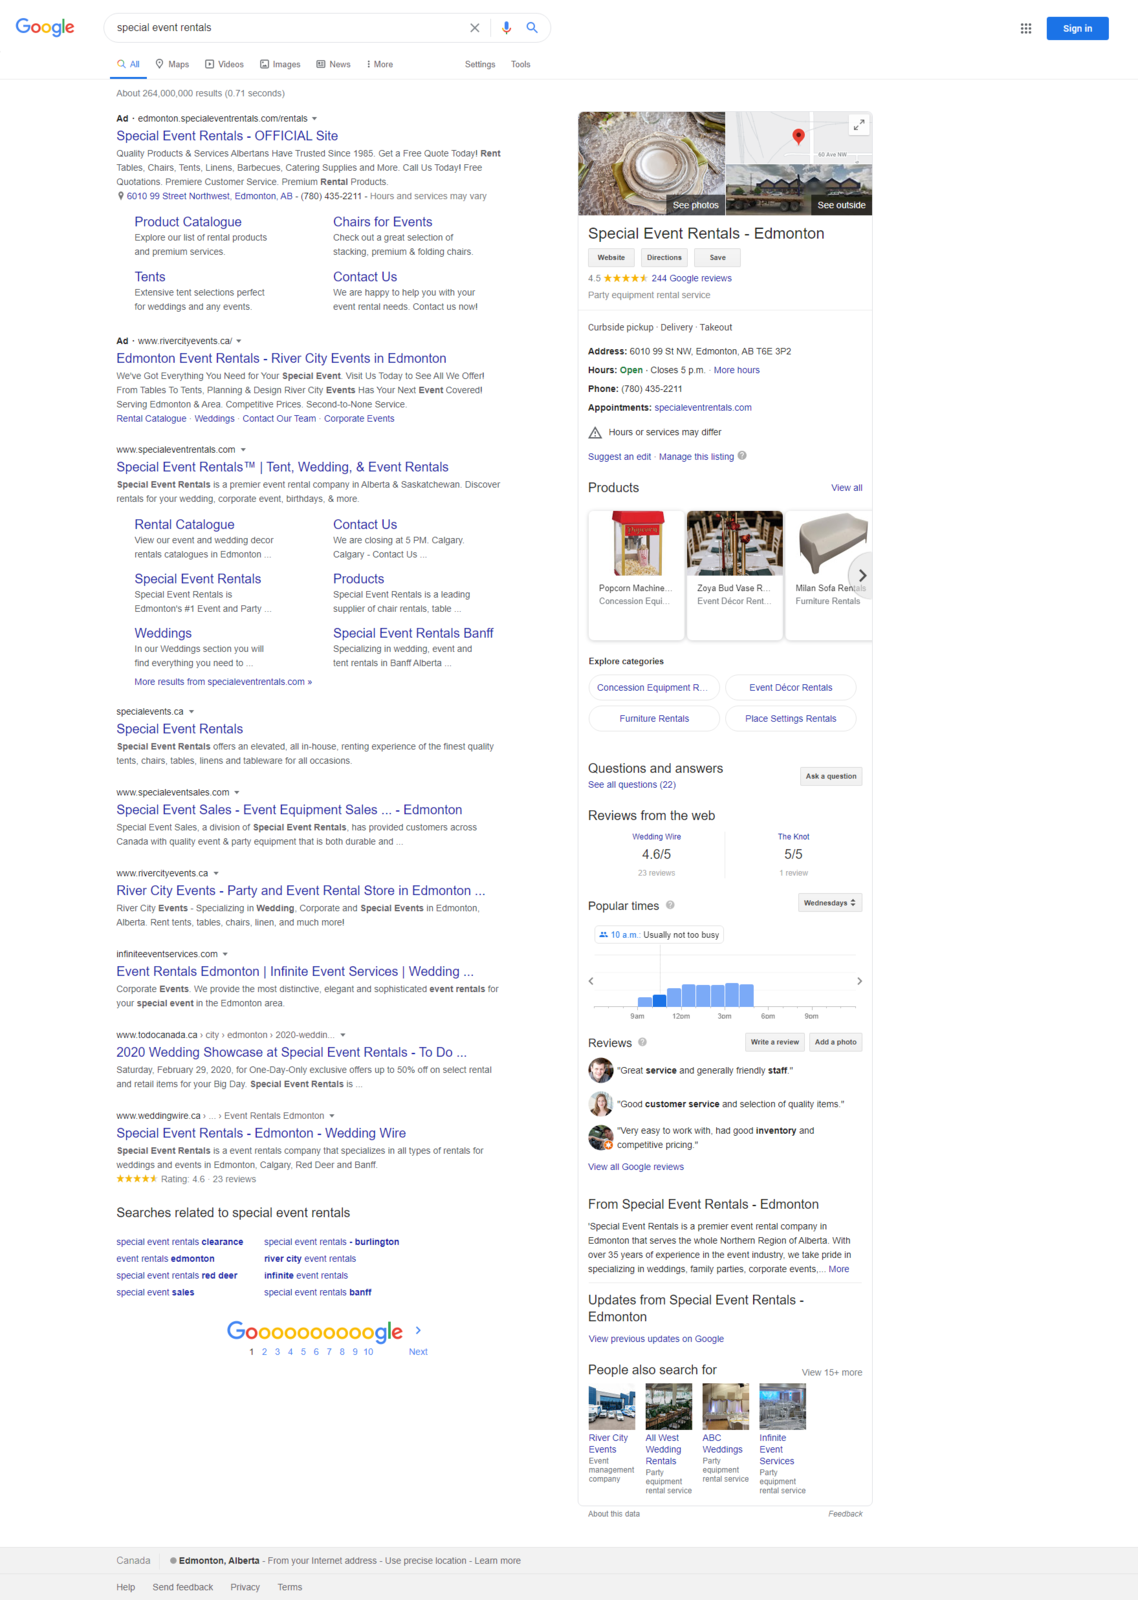 screencapture-google-search-2020-08-26-09_59_39.png